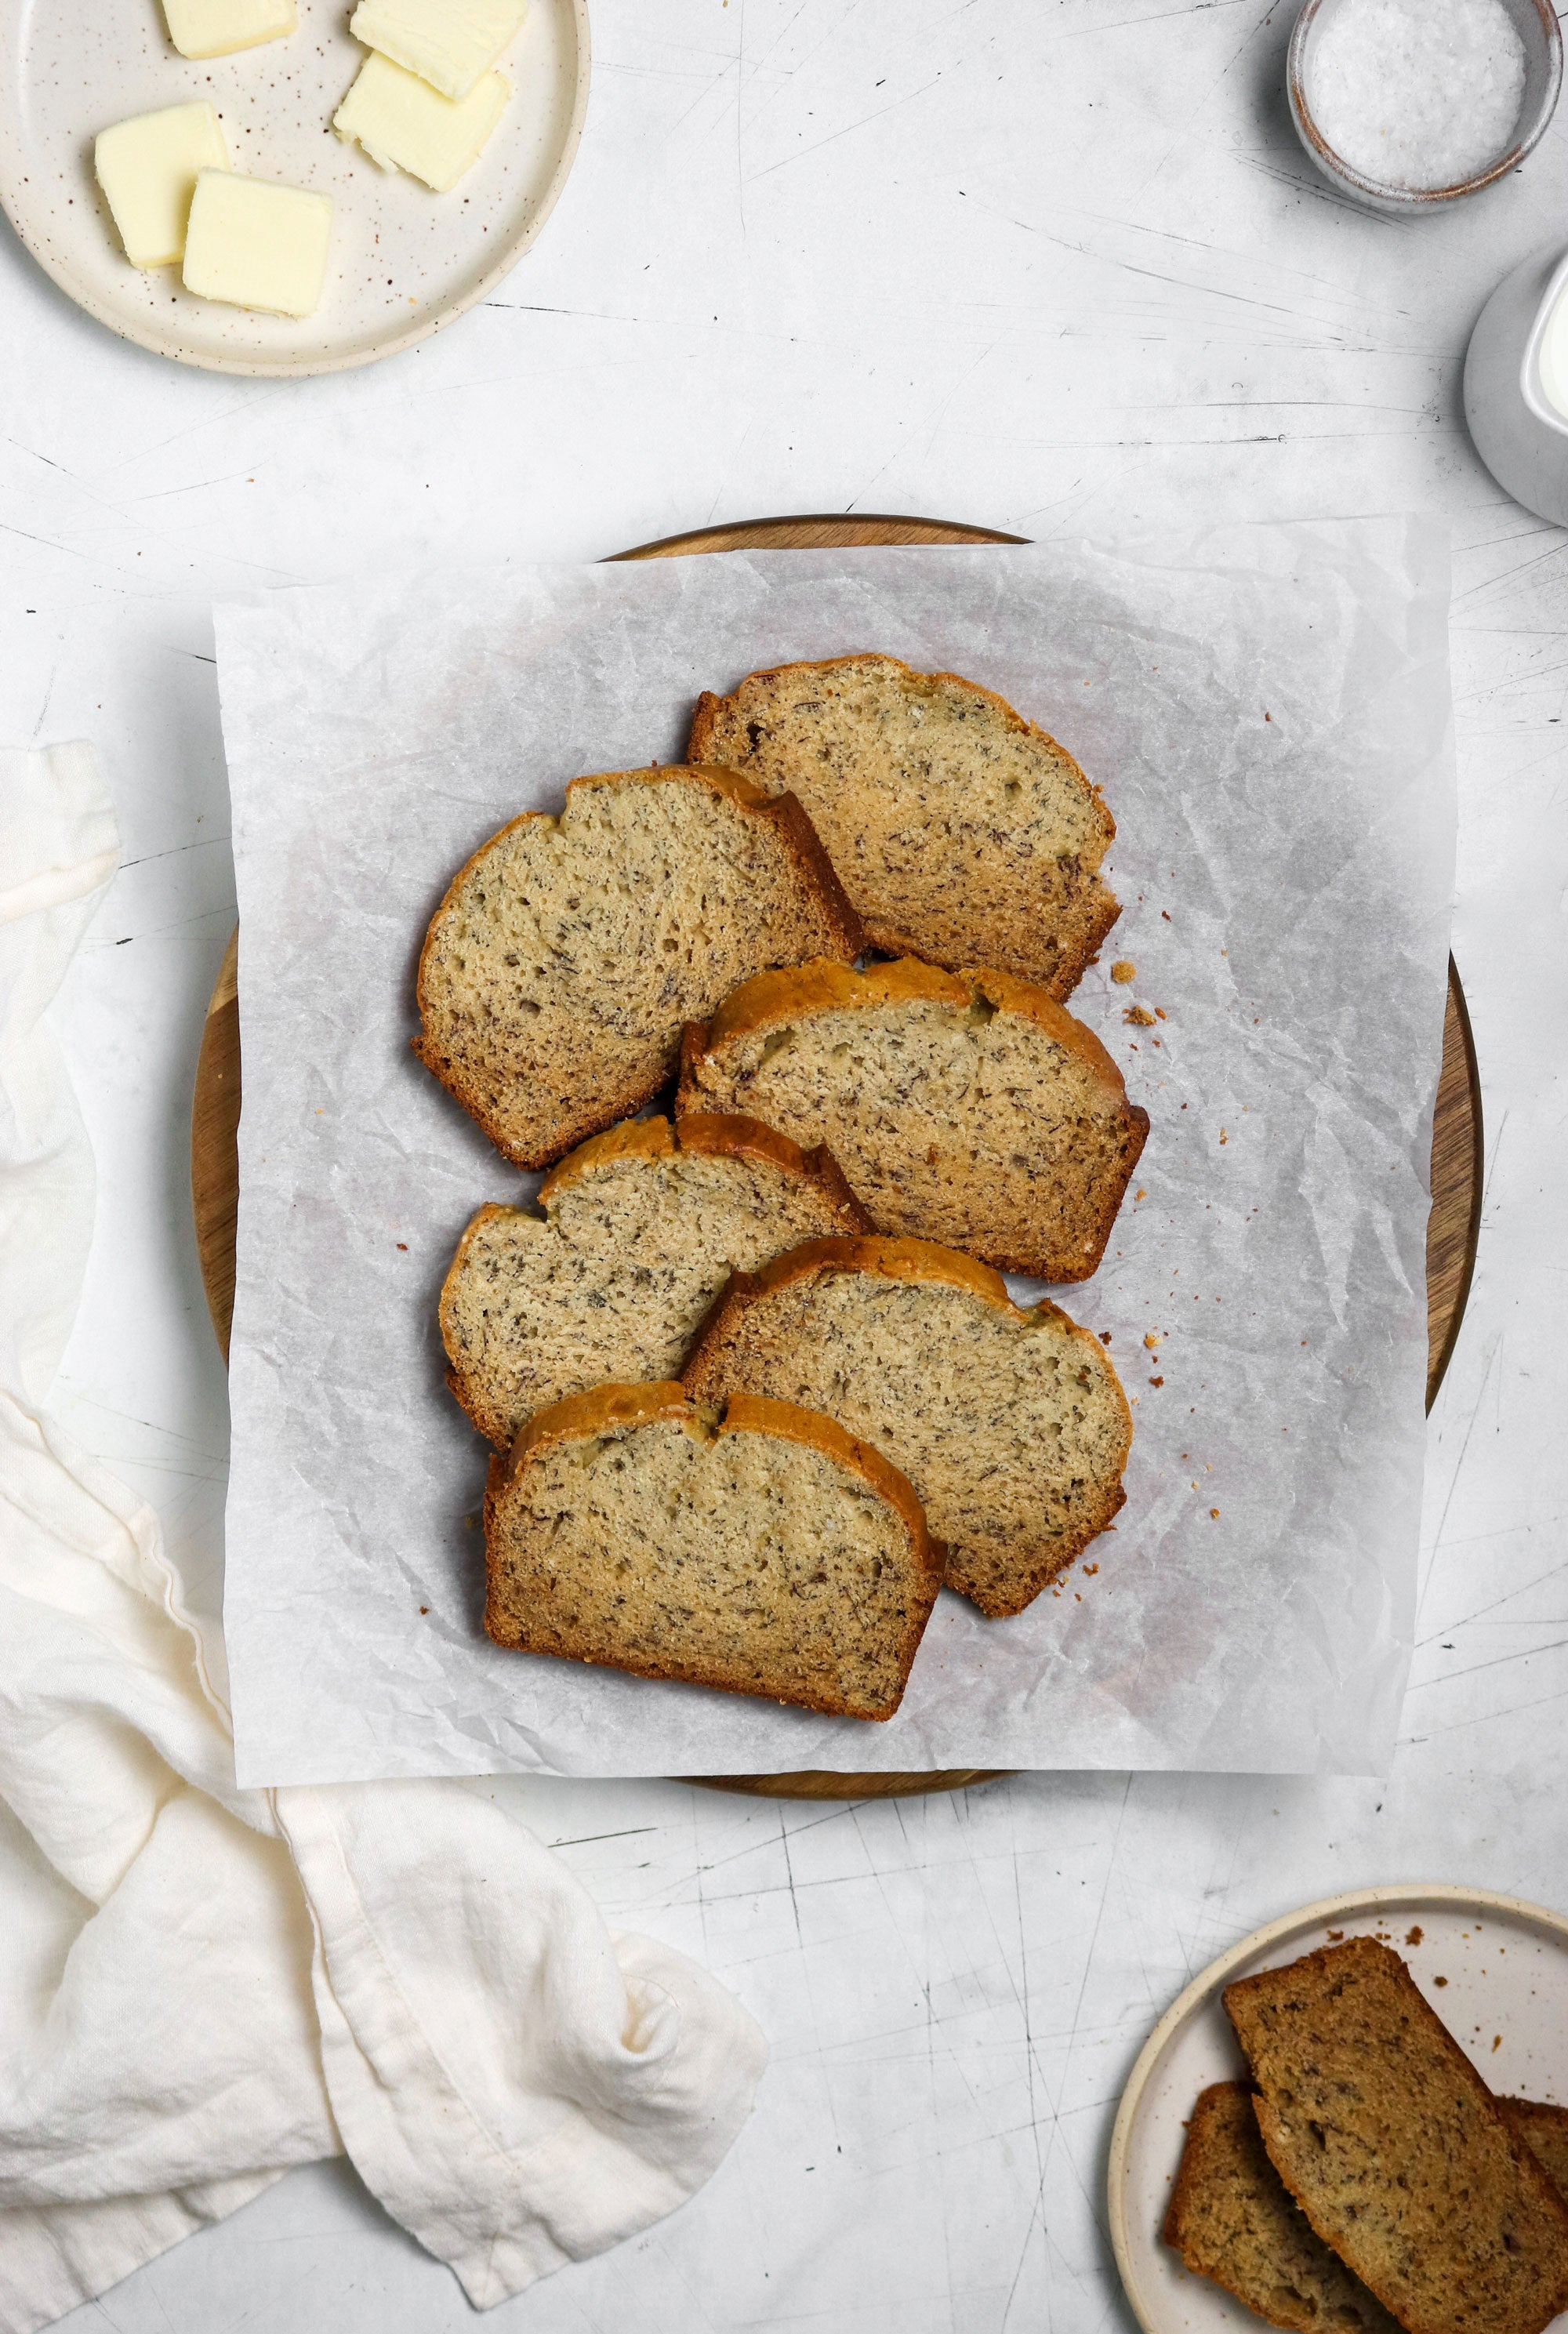 Image from above of a basket with six pieces of Miss Jones Baking Co SmartSugar Original Banana Bread